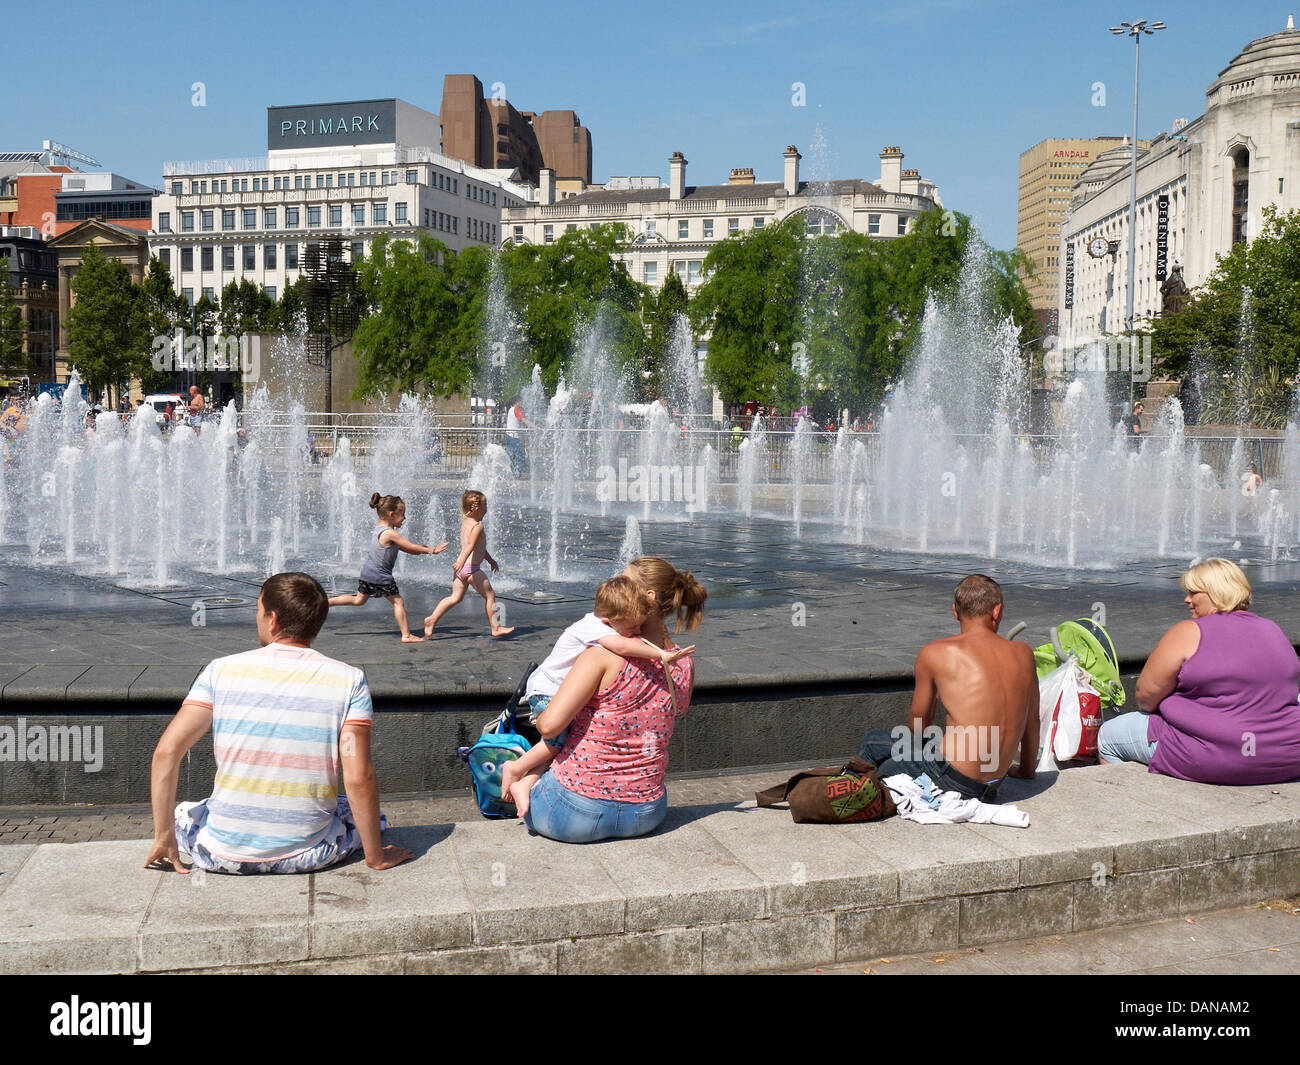 Manchester,UK,Tuesday 16th July. People enjoying the continuing hot sunny weather whilst cooling of in the fountain - Stock Image